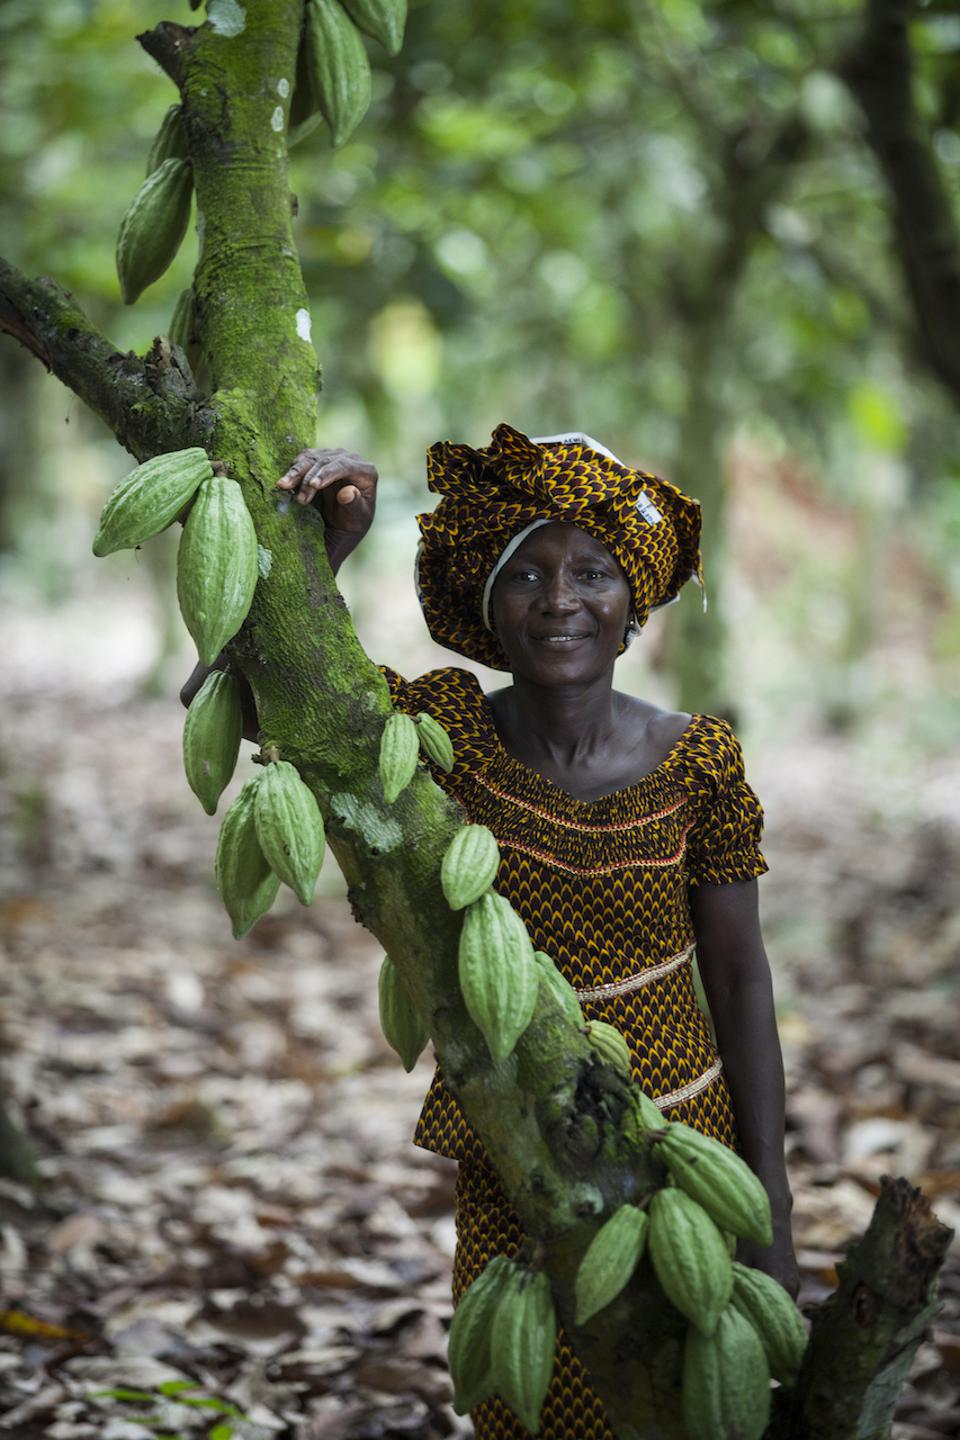 Alphonsine N'Guetia of Coopaza proudly stands next to a cocoa tree on her farm in Cote d'Ivoire. Coopaza is a Part of the Ben & Jerry's Living Income program.